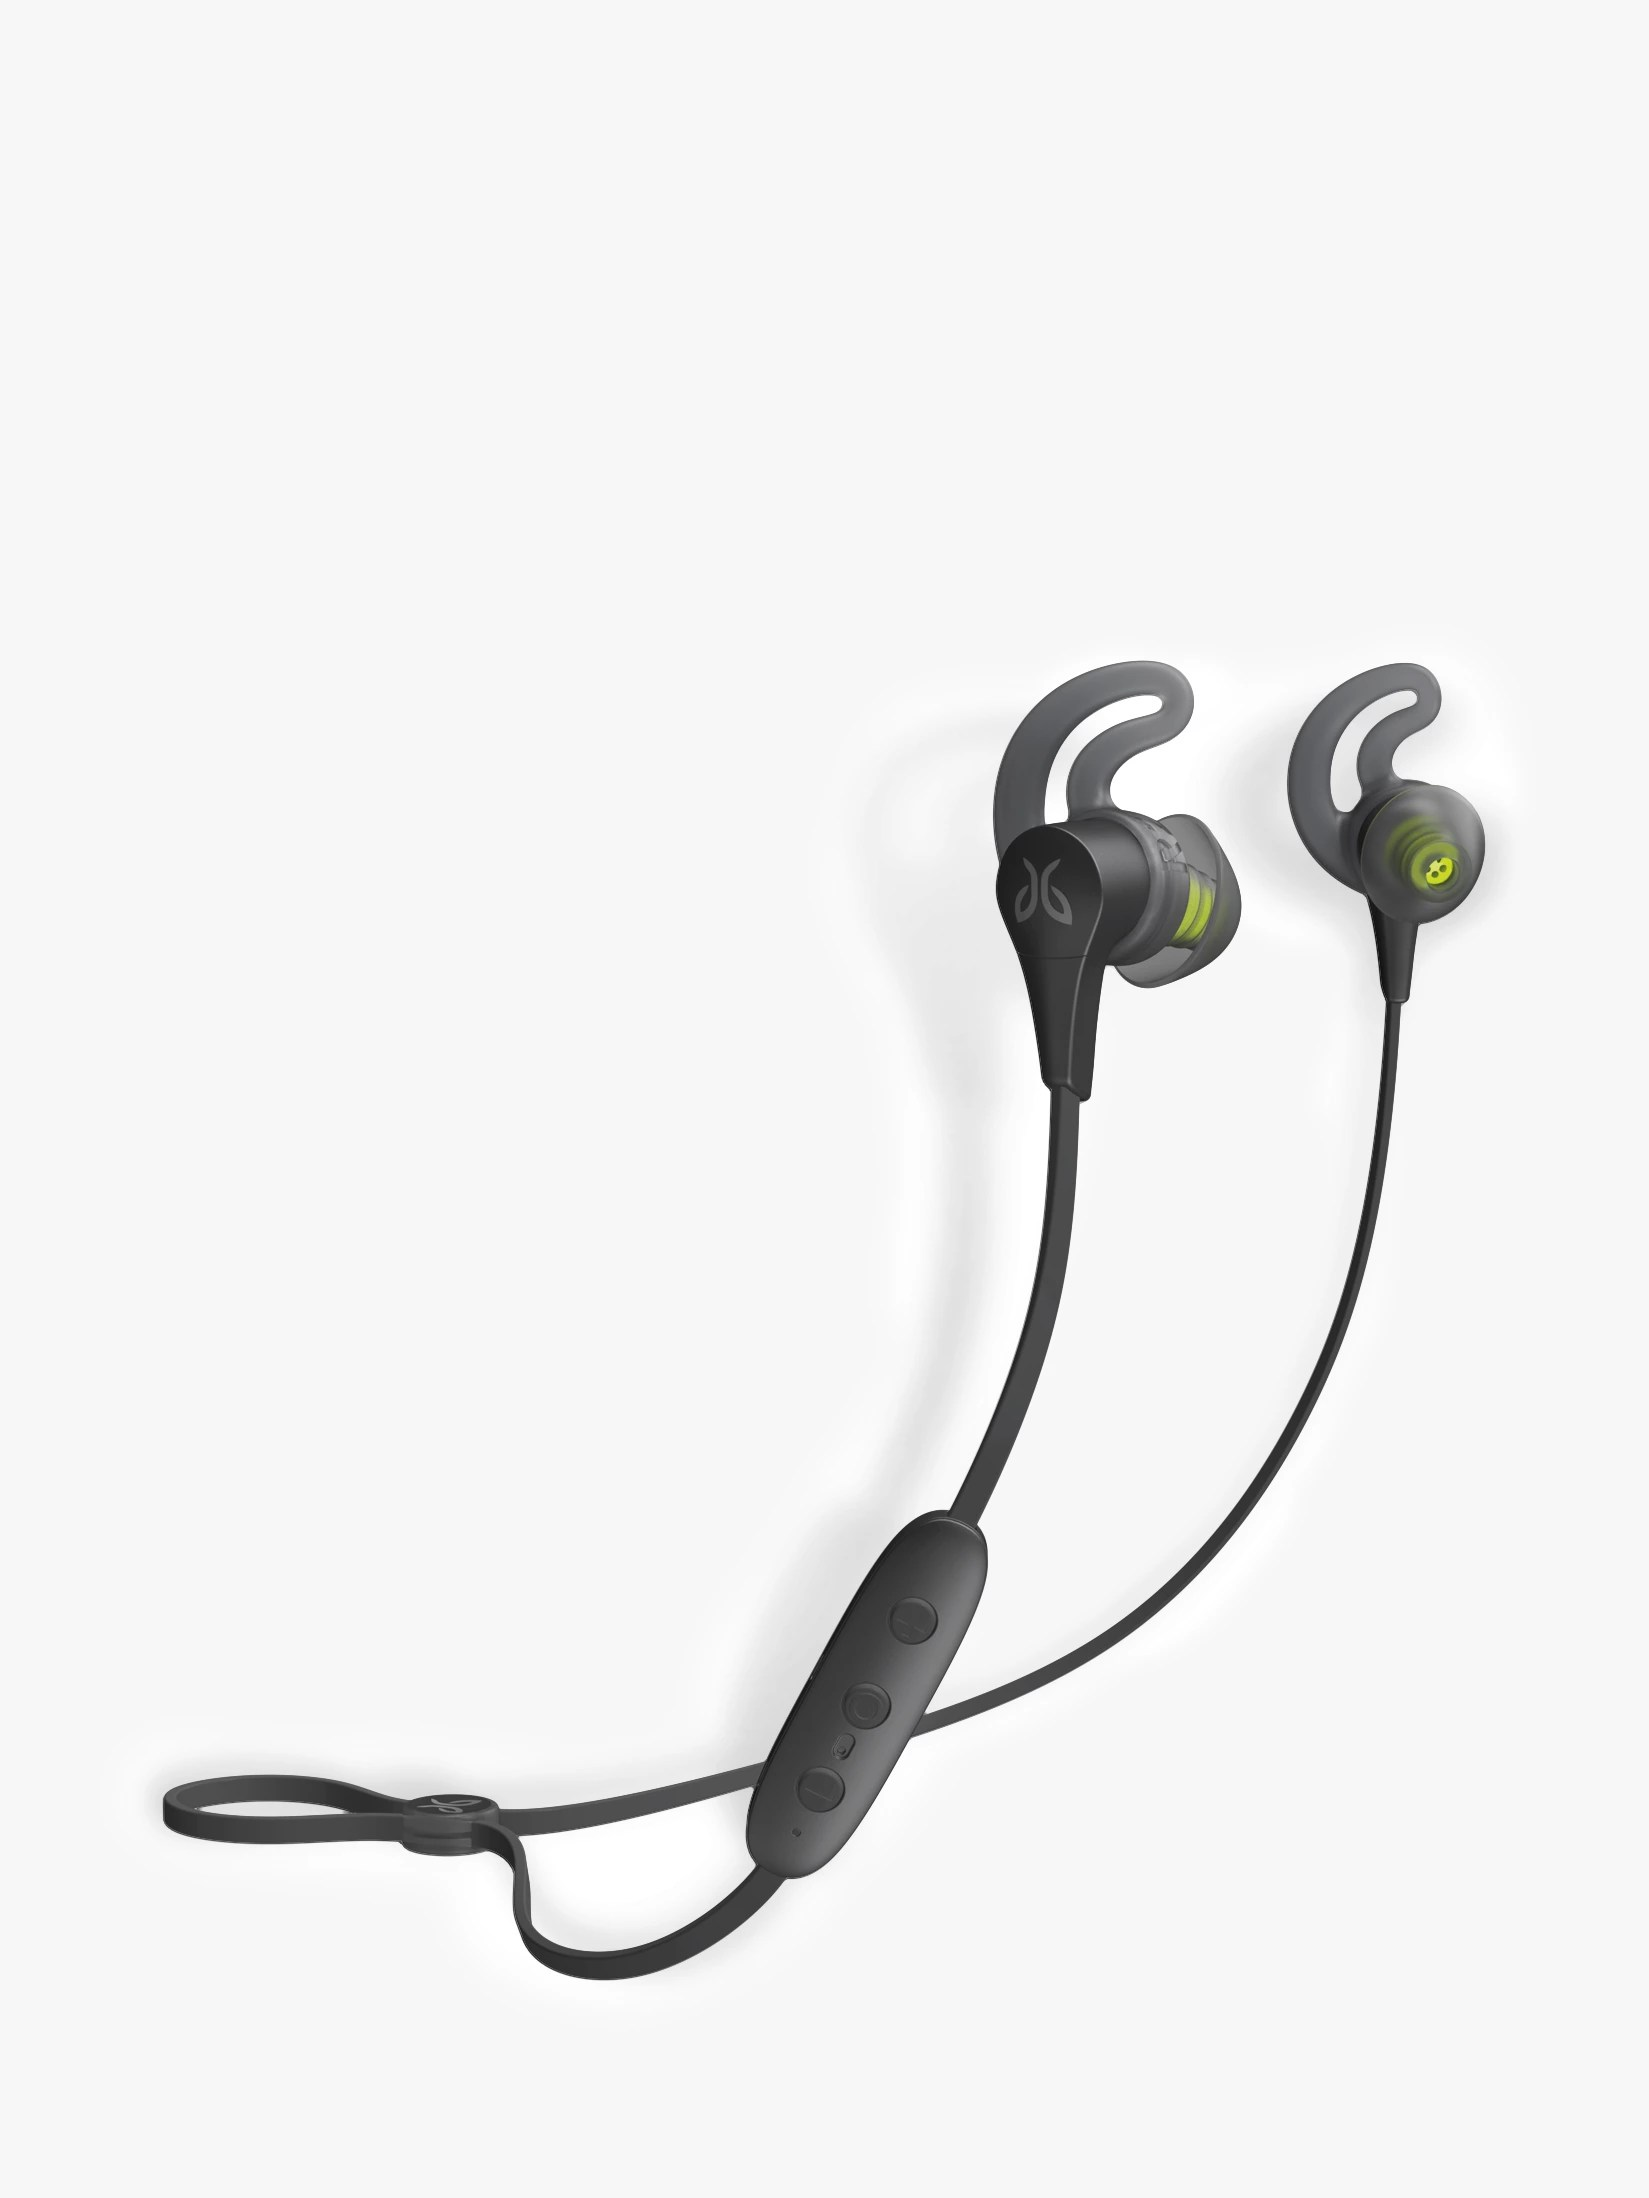 buy jaybird x4 sweat weather proof bluetooth wireless in ear headphones with mic  [ 1440 x 1920 Pixel ]